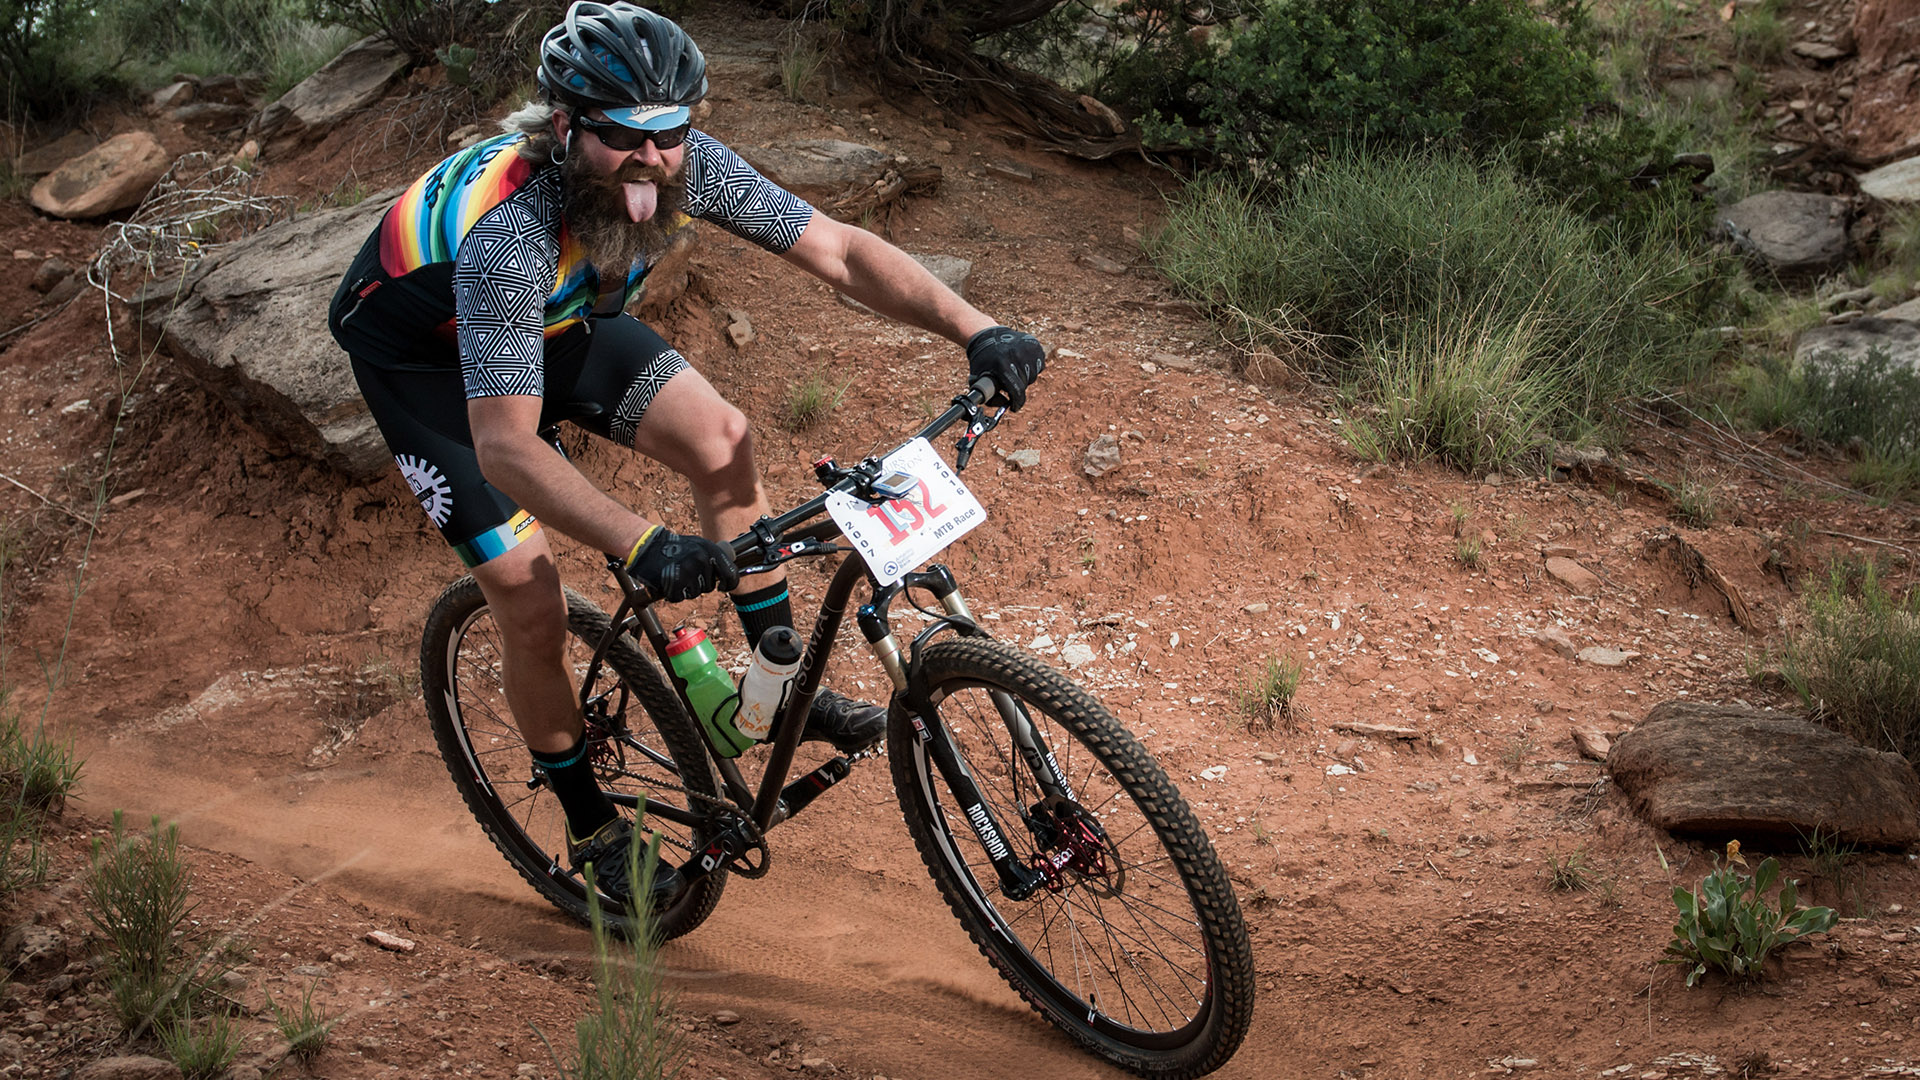 June fundraiser roundup: 24 Hours in the Canyon, ALT, Blondes vs. Brunettes, more